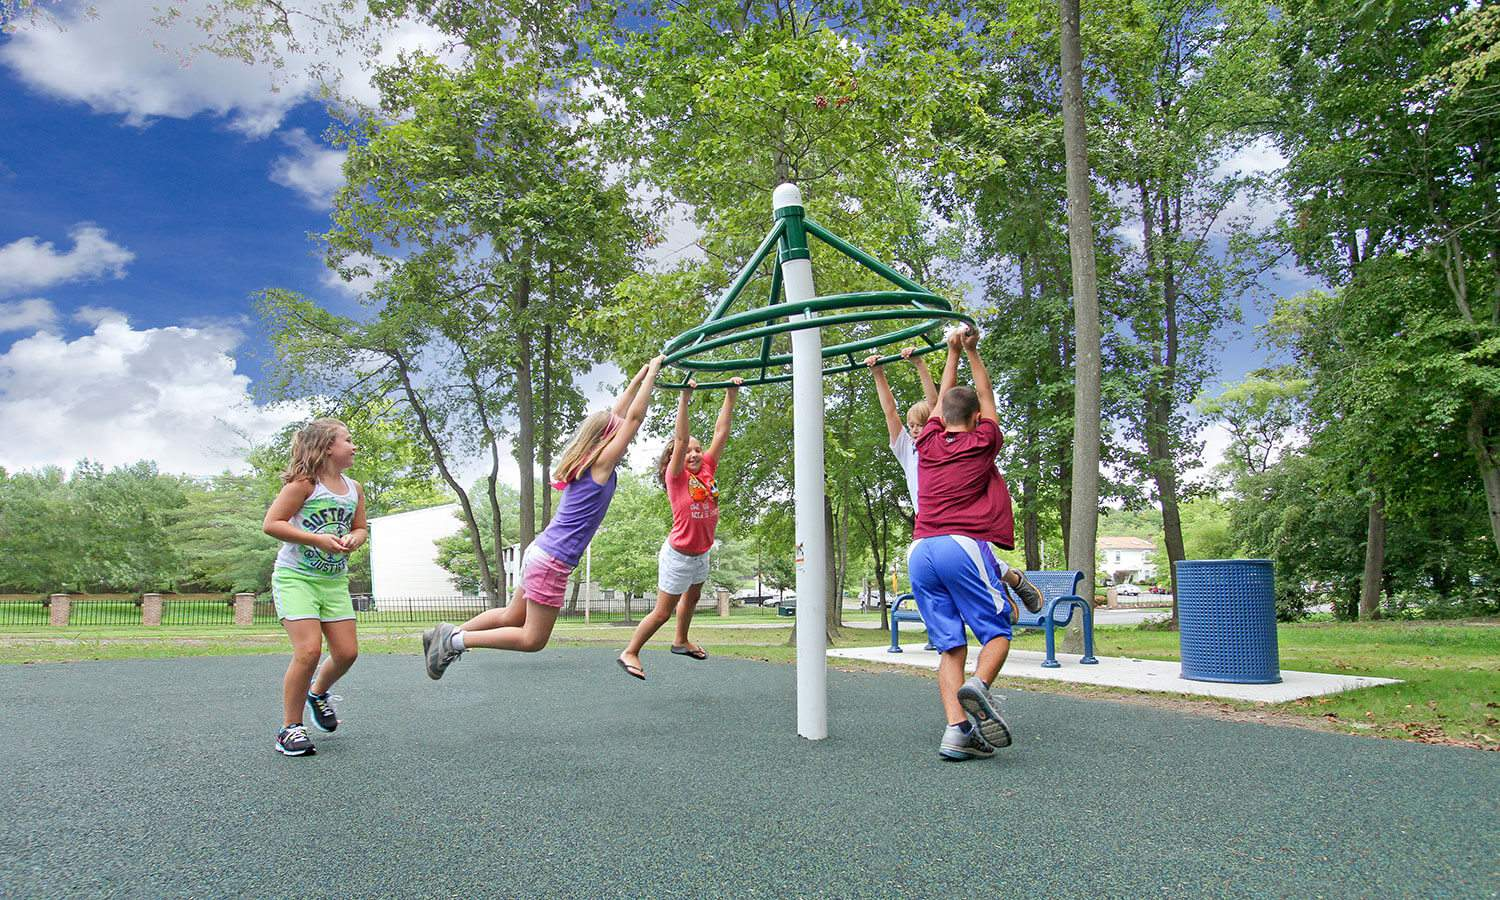 Creating Play Structures With Quality Assurance